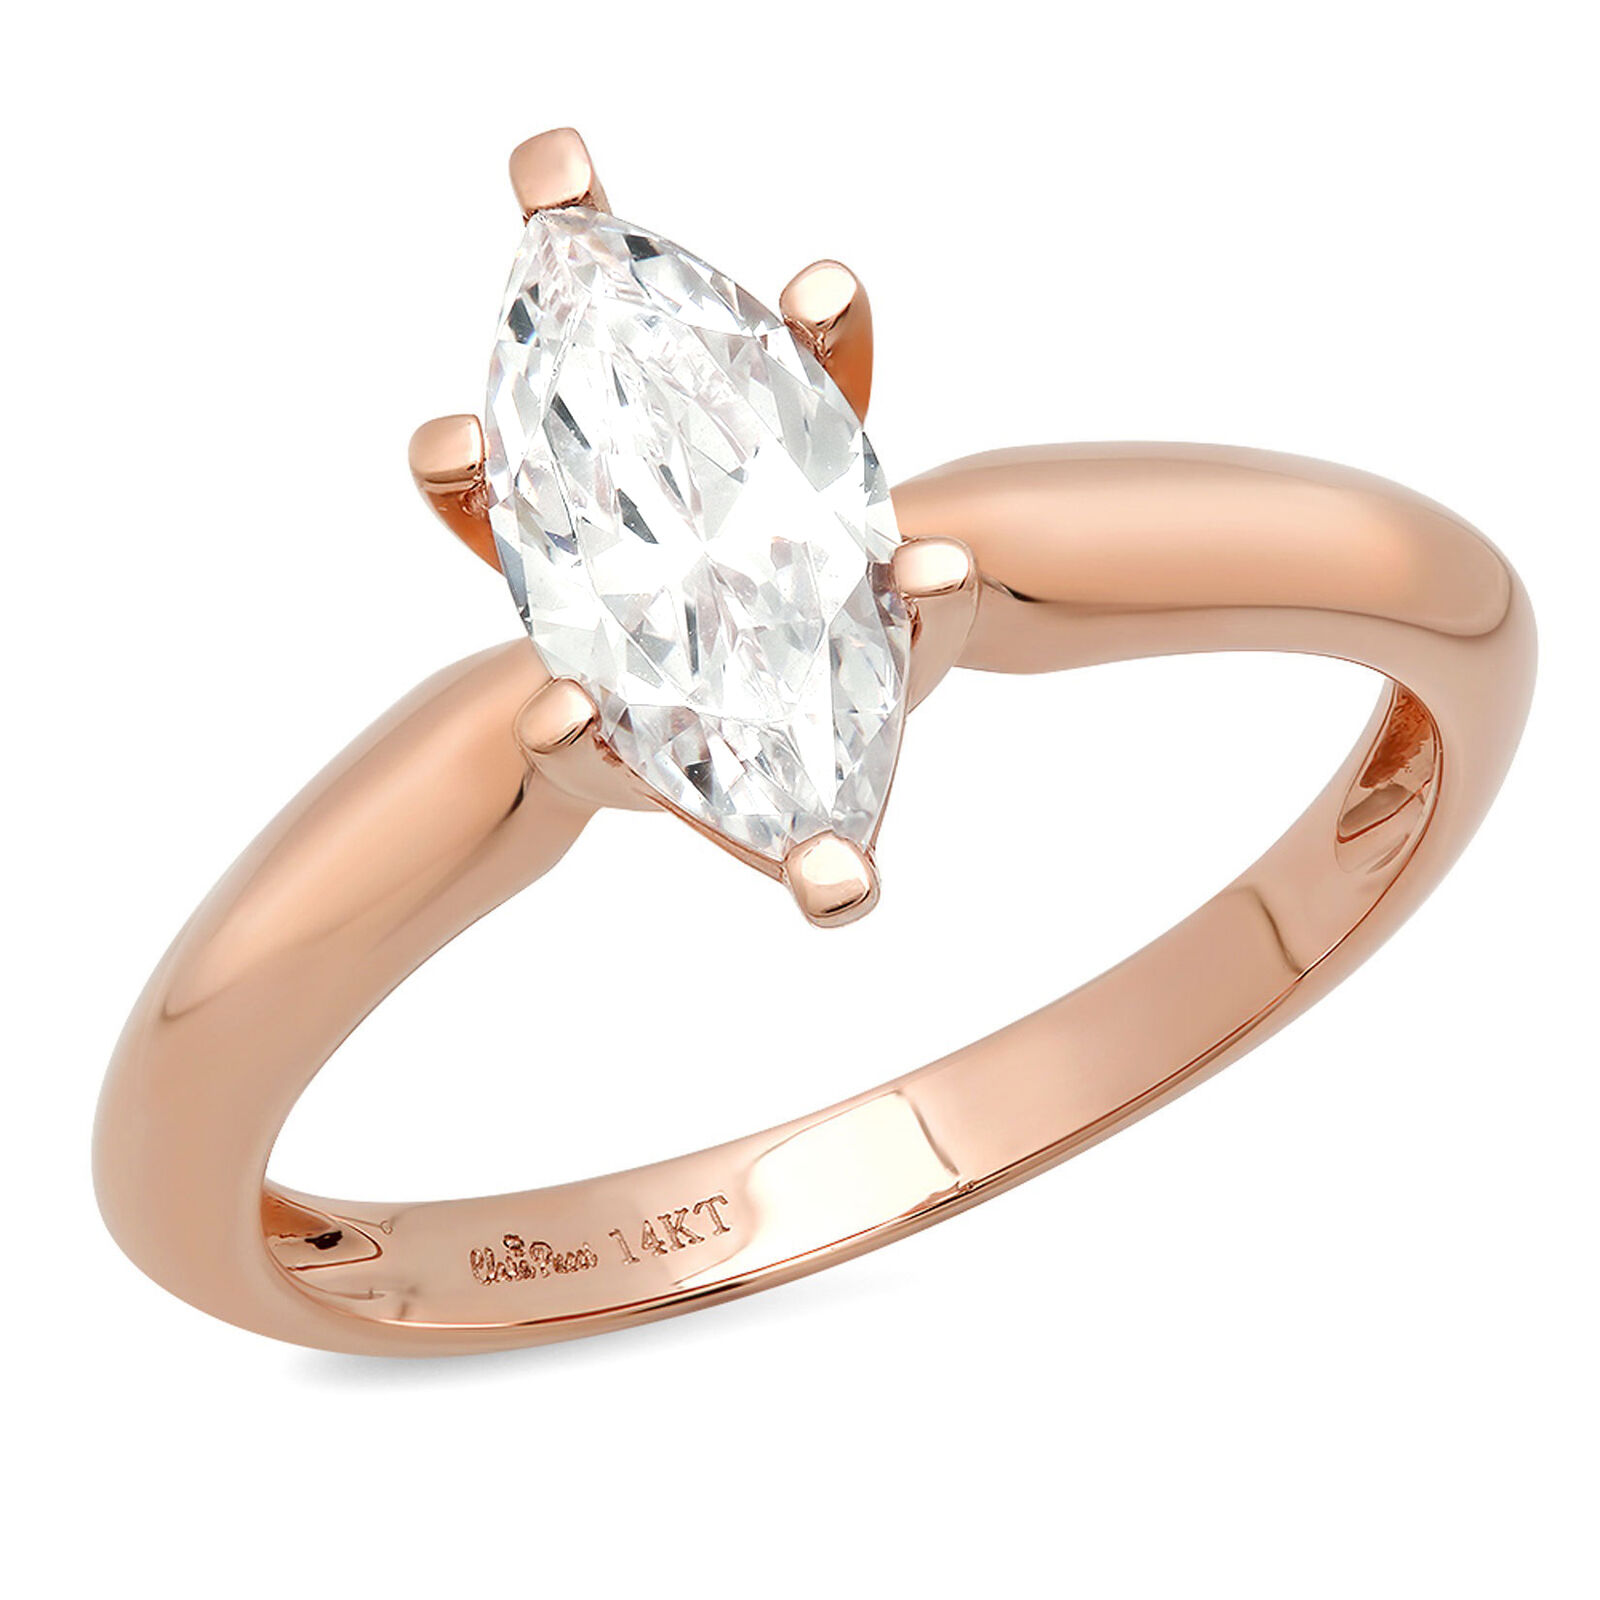 1.7ct Marquise Cut Designer Bridal Engagement Promise Ring Solid 14k pink gold